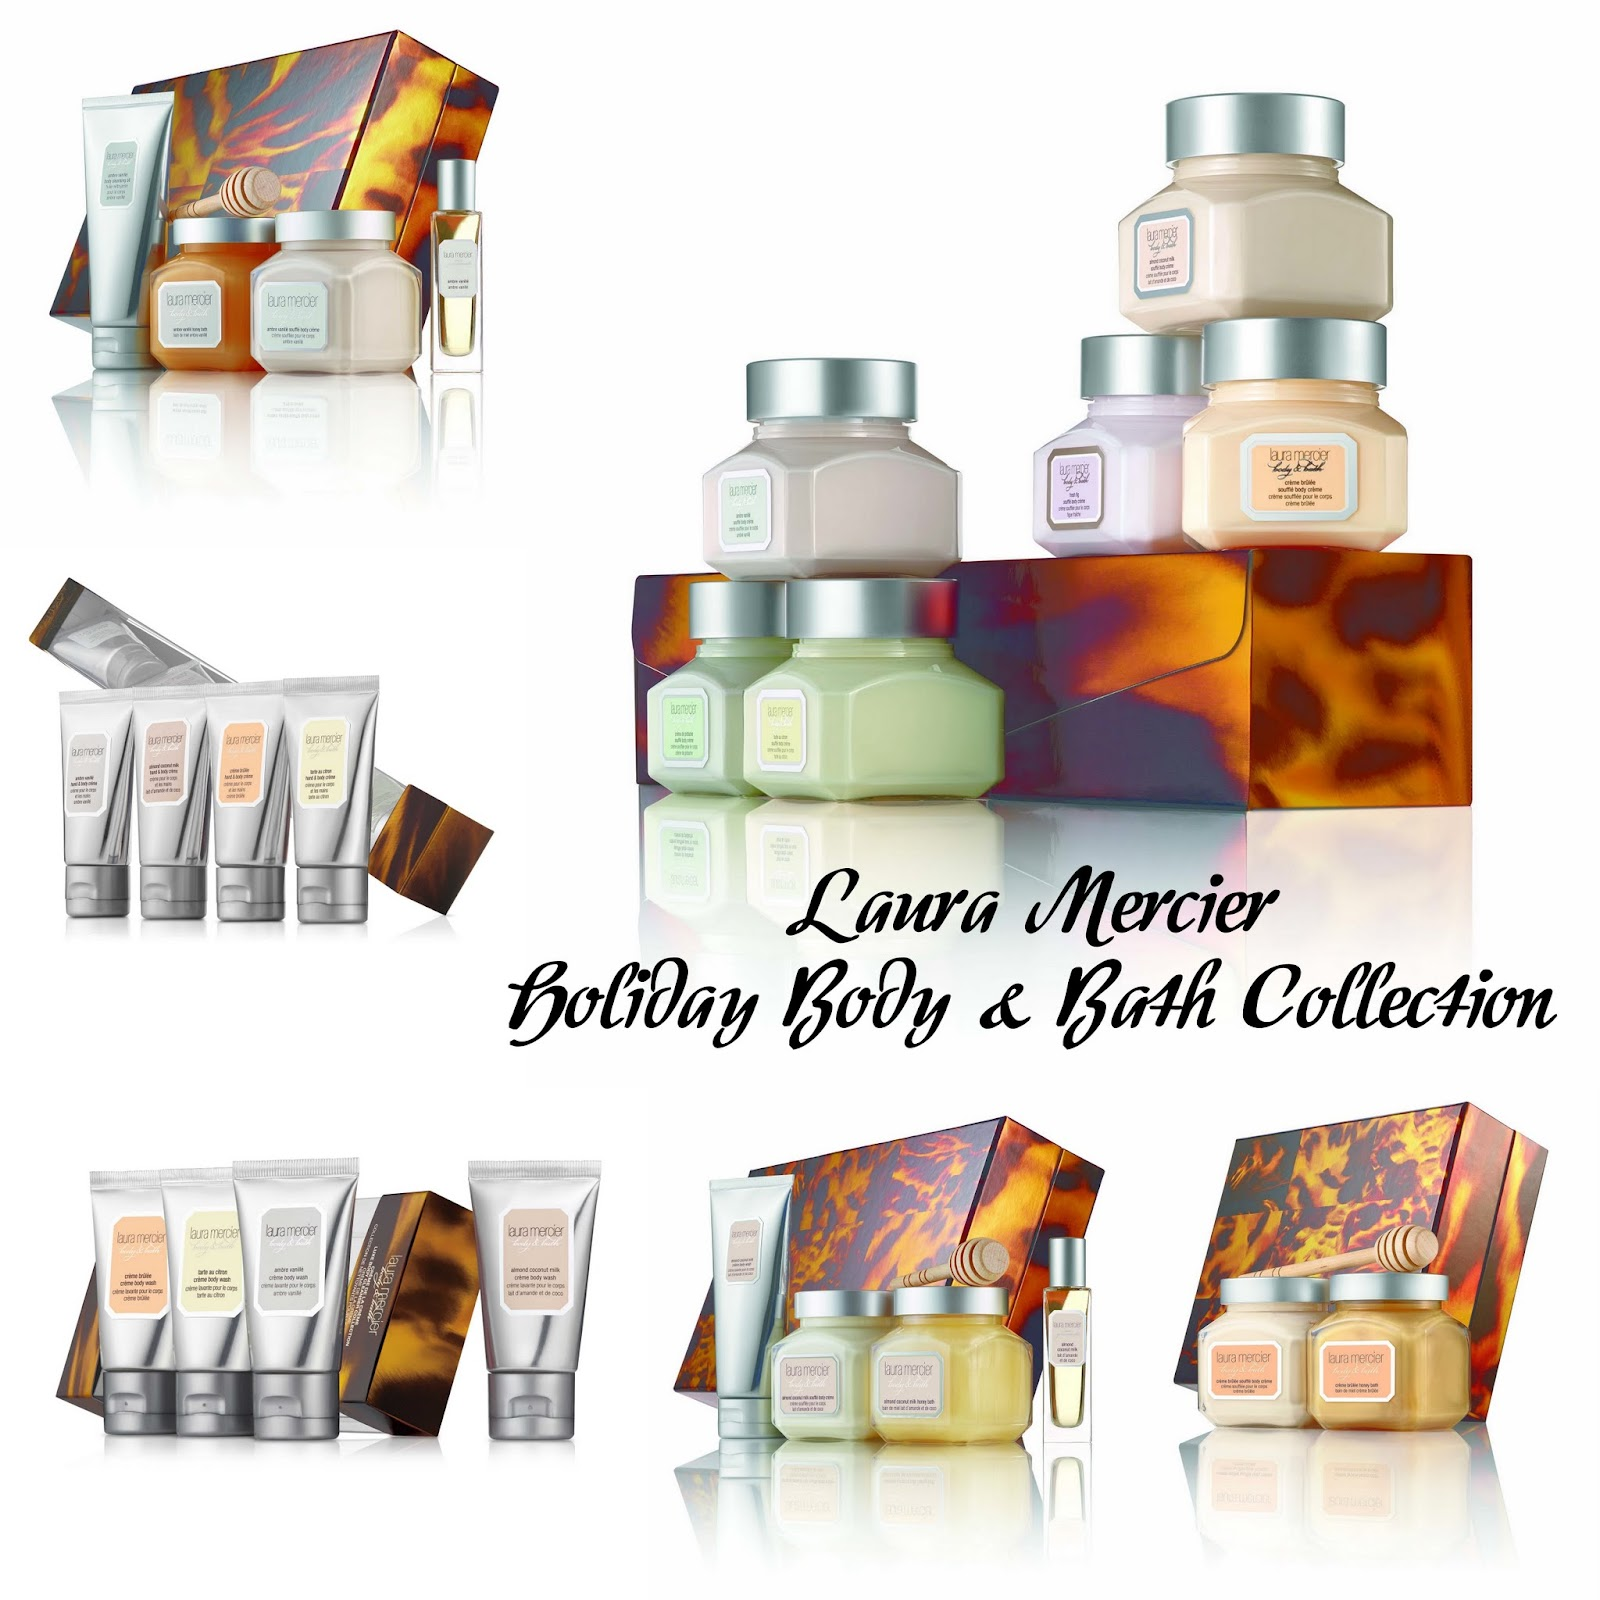 Laura Mercier Holiday Body & Bath Collection